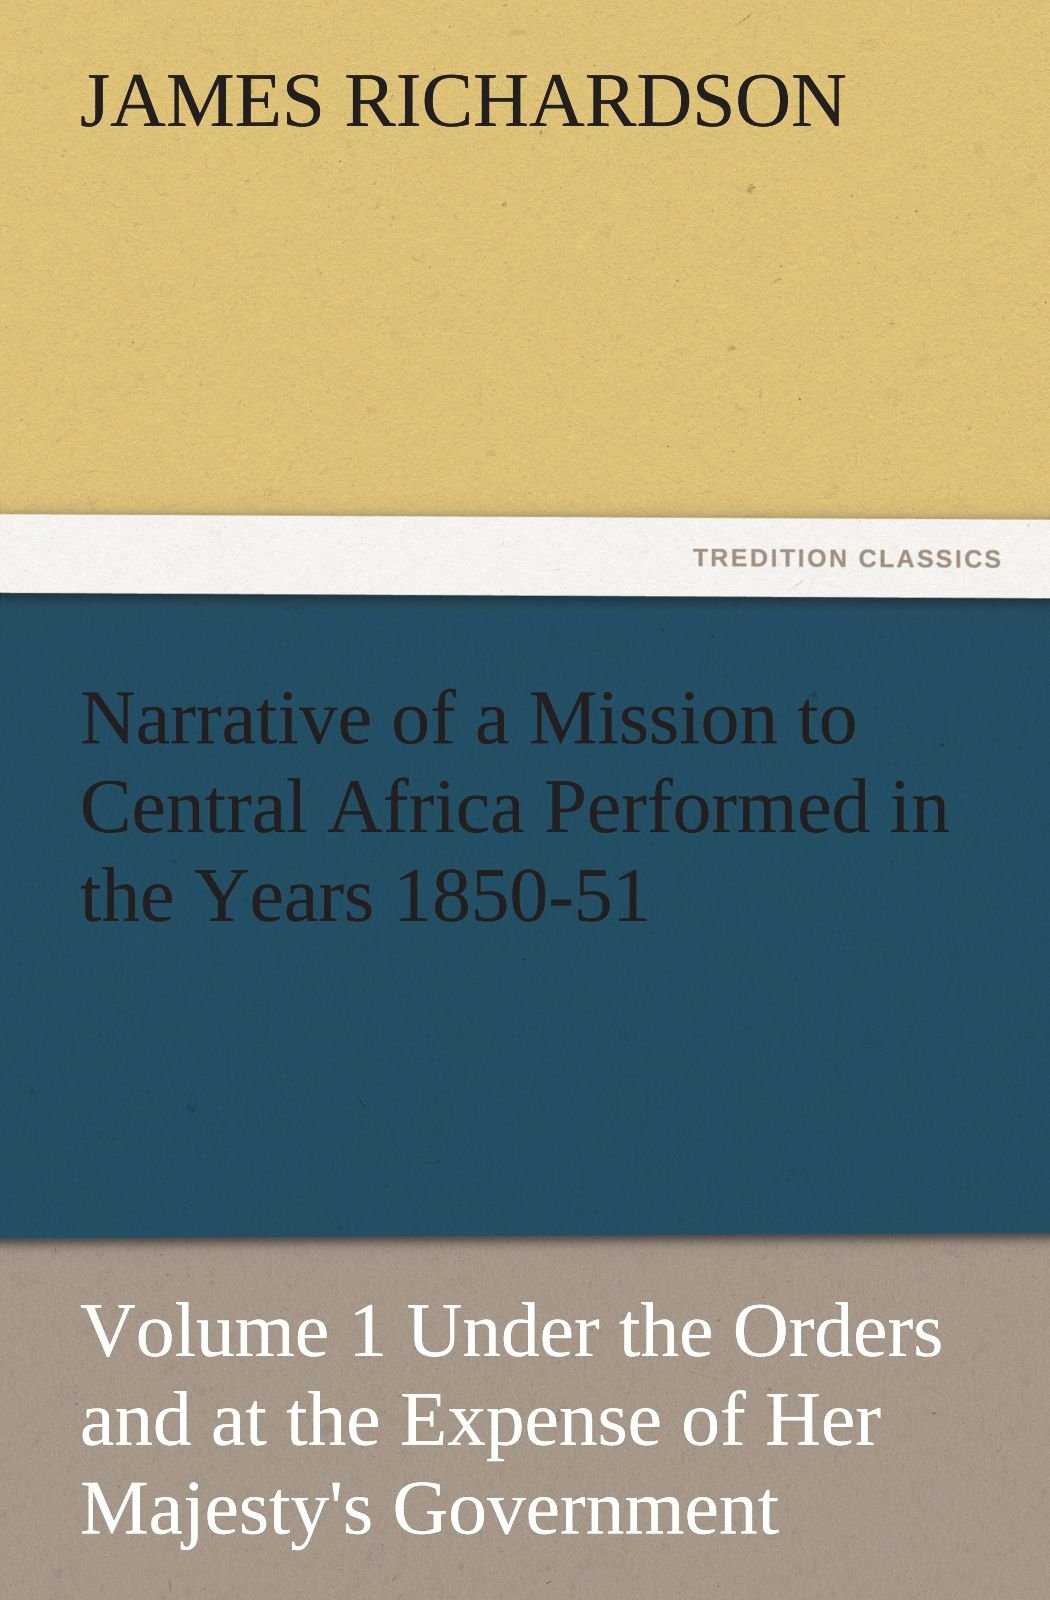 Download Narrative of a Mission to Central Africa Performed in the Years 1850-51, Volume 1 Under the Orders and at the Expense of Her Majesty's Government (TREDITION CLASSICS) pdf